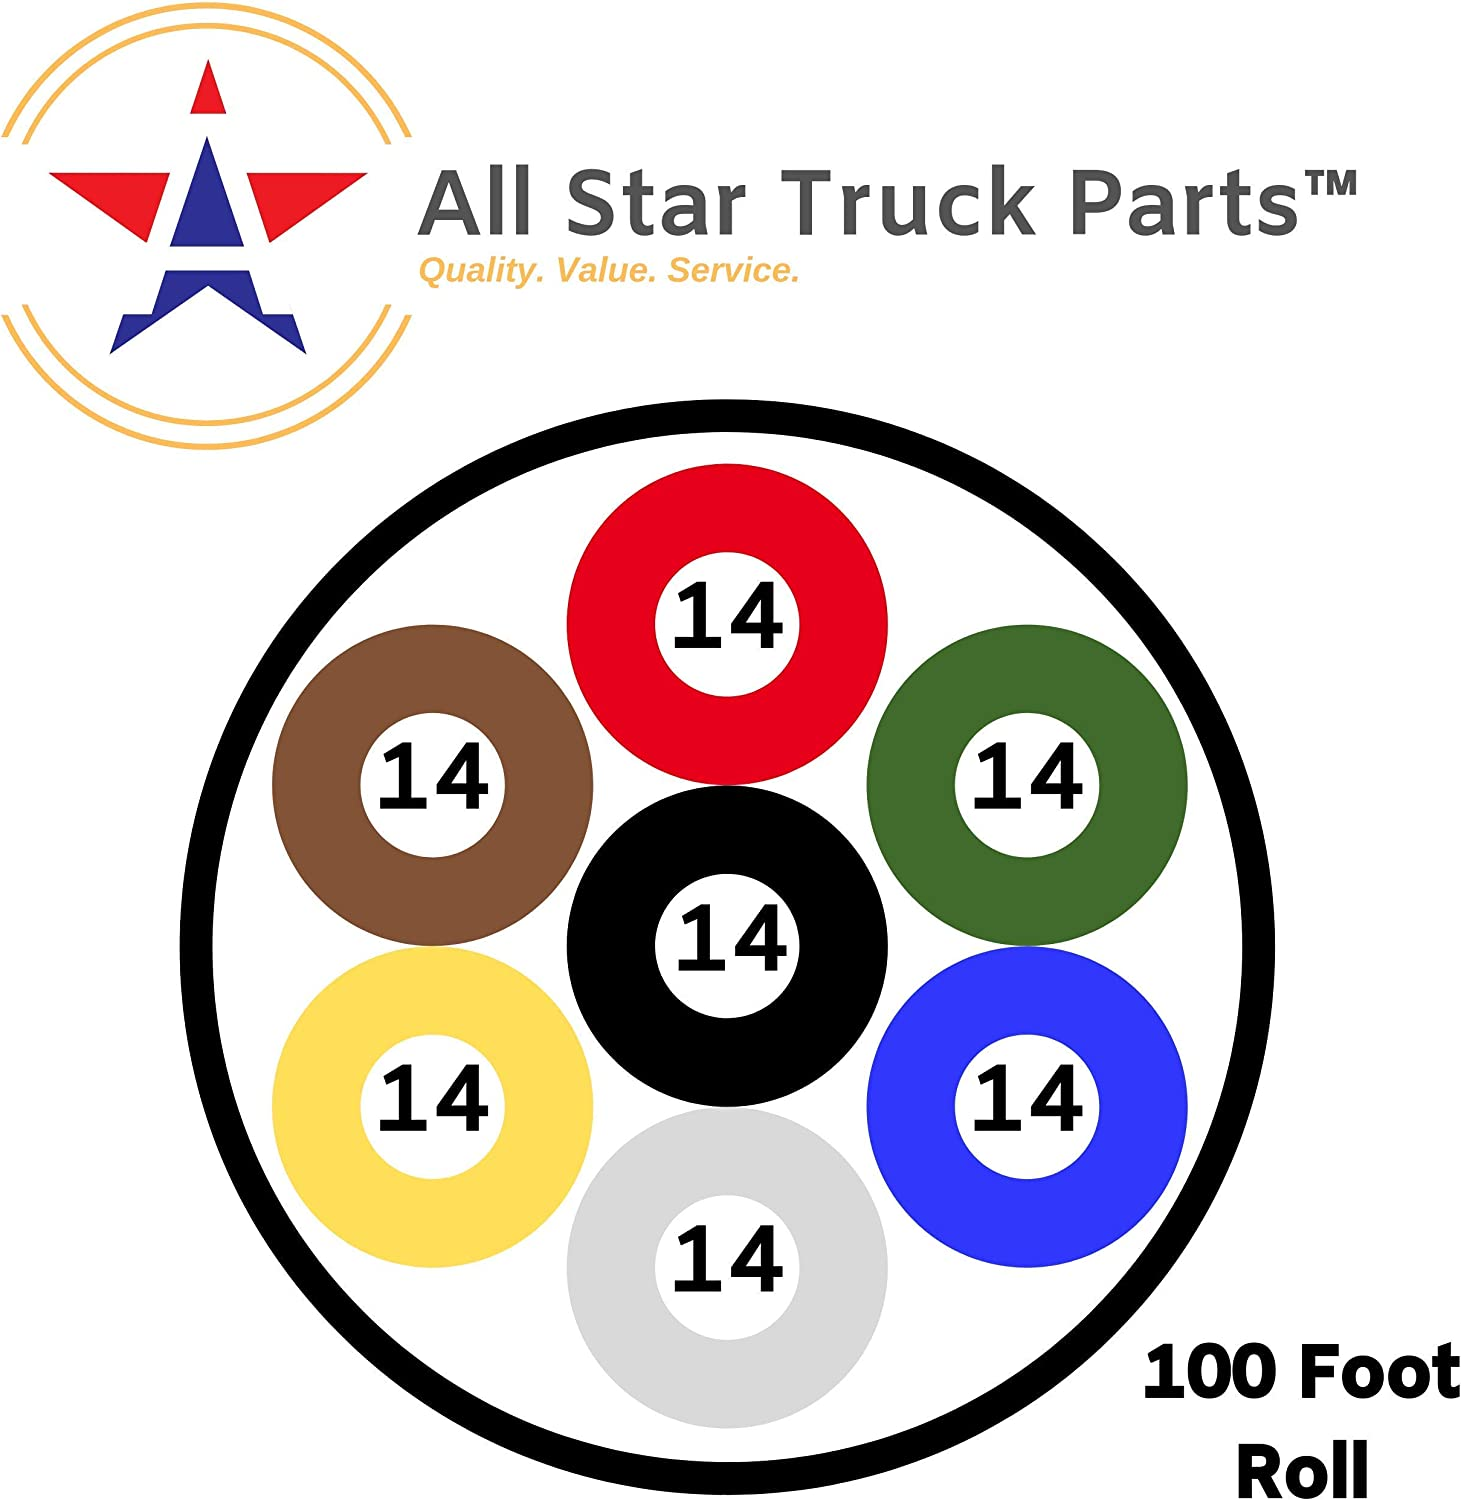 50 FT ROLL ALL STAR TRUCK PARTS Heavy Duty 14 Gauge 7 Way Conductor Wire RV Trailer Cable Cord Insulated Copper